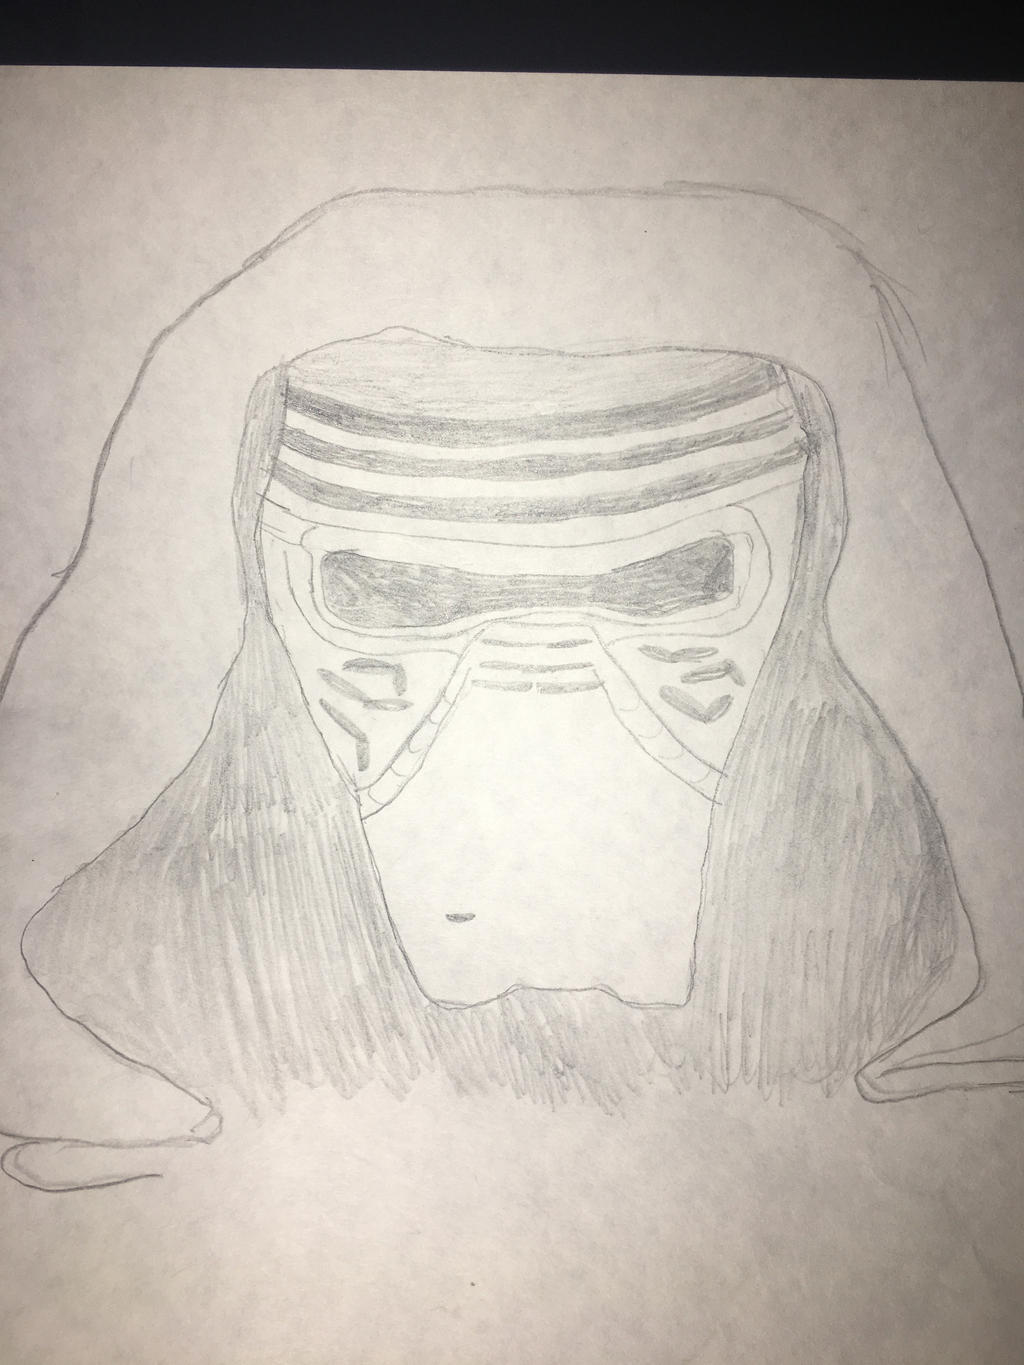 My drawing of Kylo Ren by Dracorider19